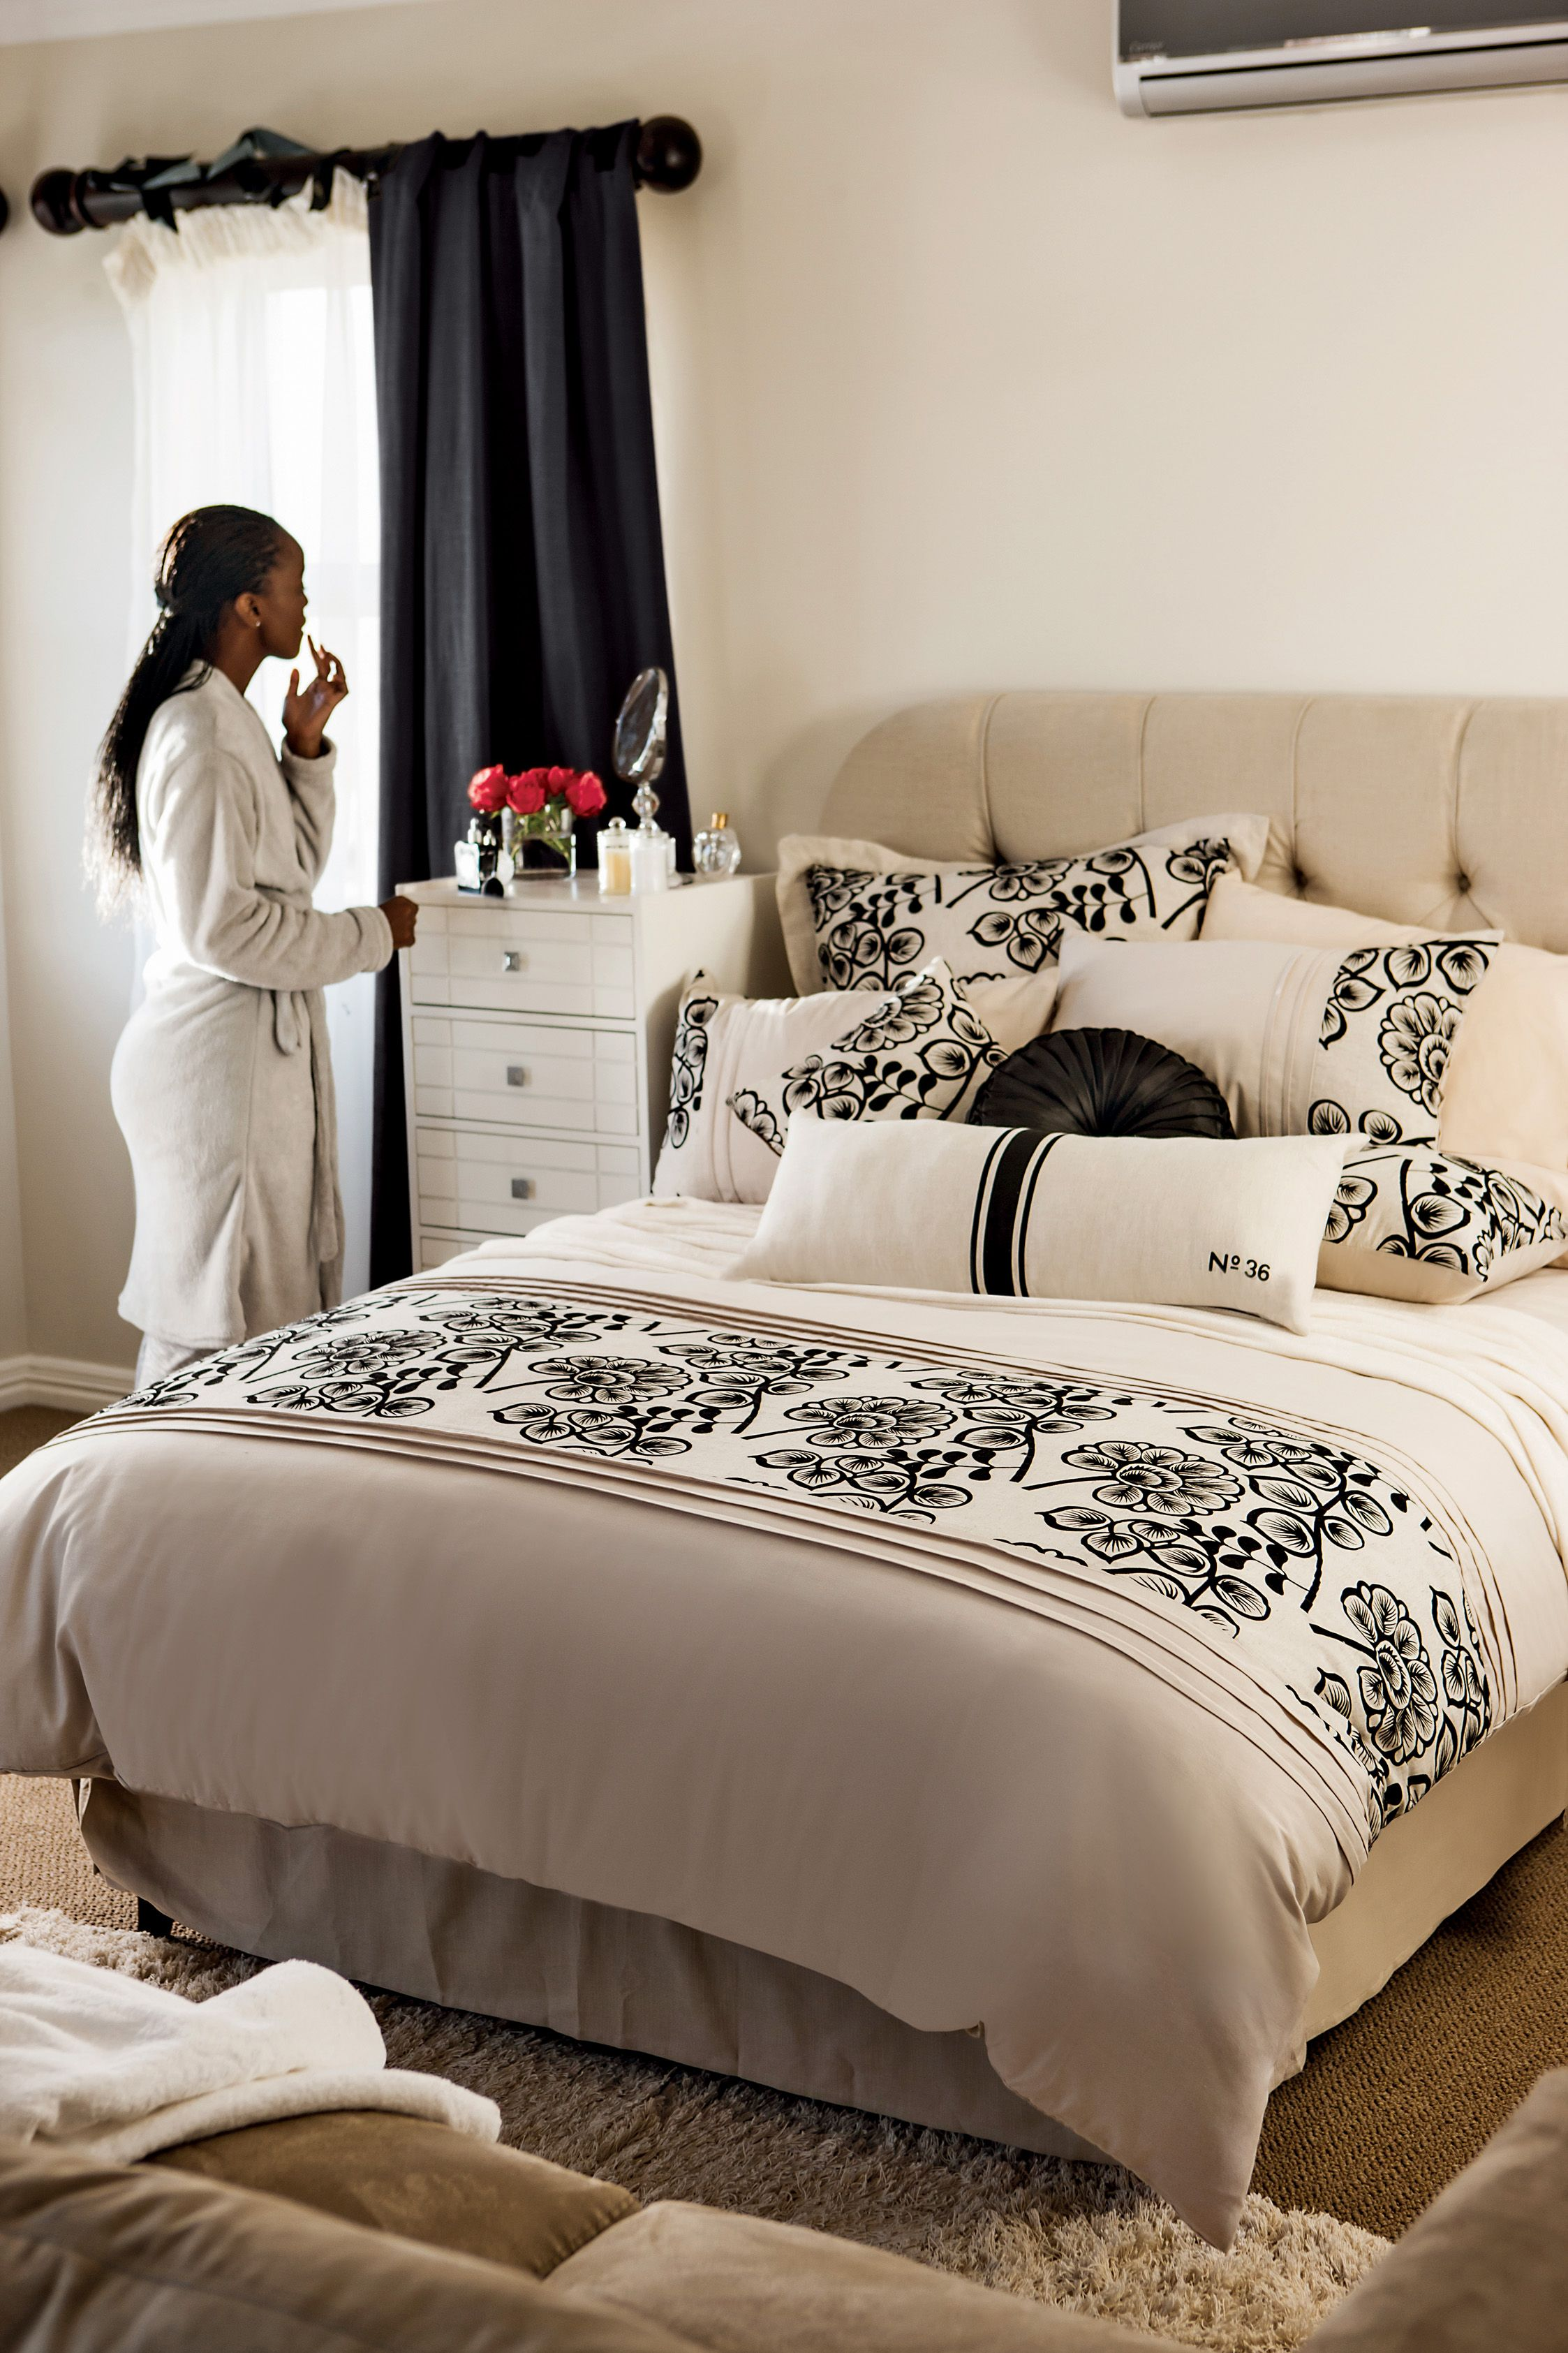 Mr Price Home Bedroom View Our Range At Bedroom Dreams Pinterest